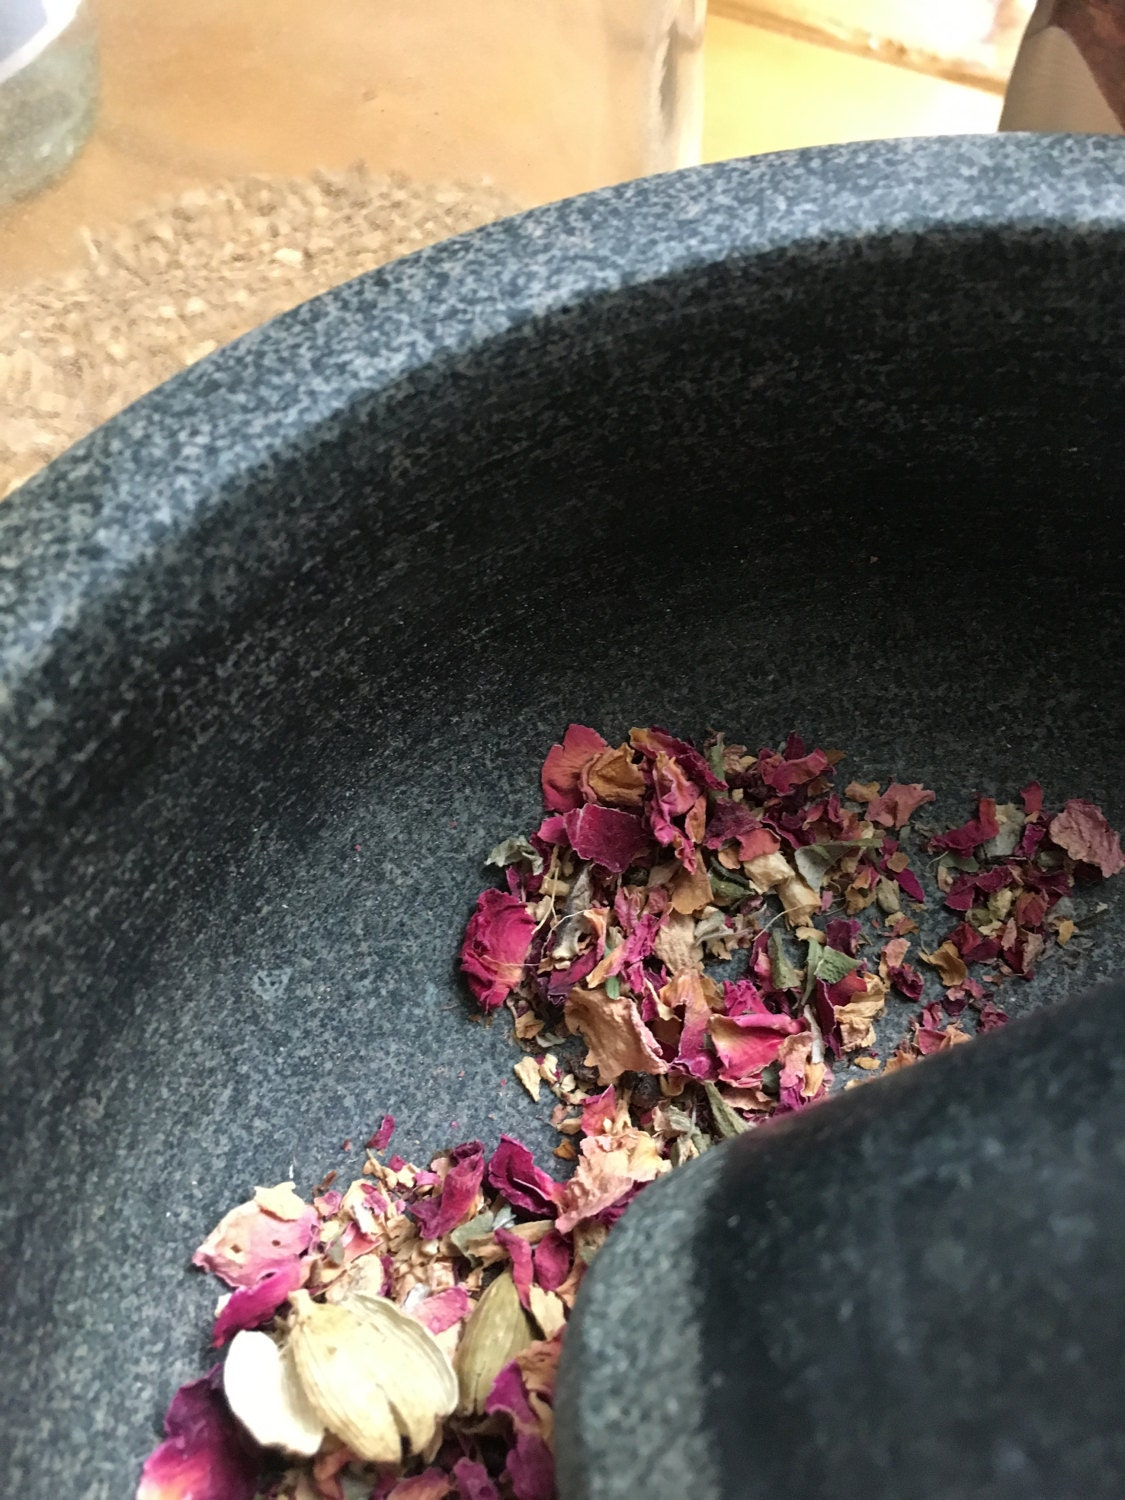 Add rose petals and ginger root and gentle use your mortar and pestle to open and blend